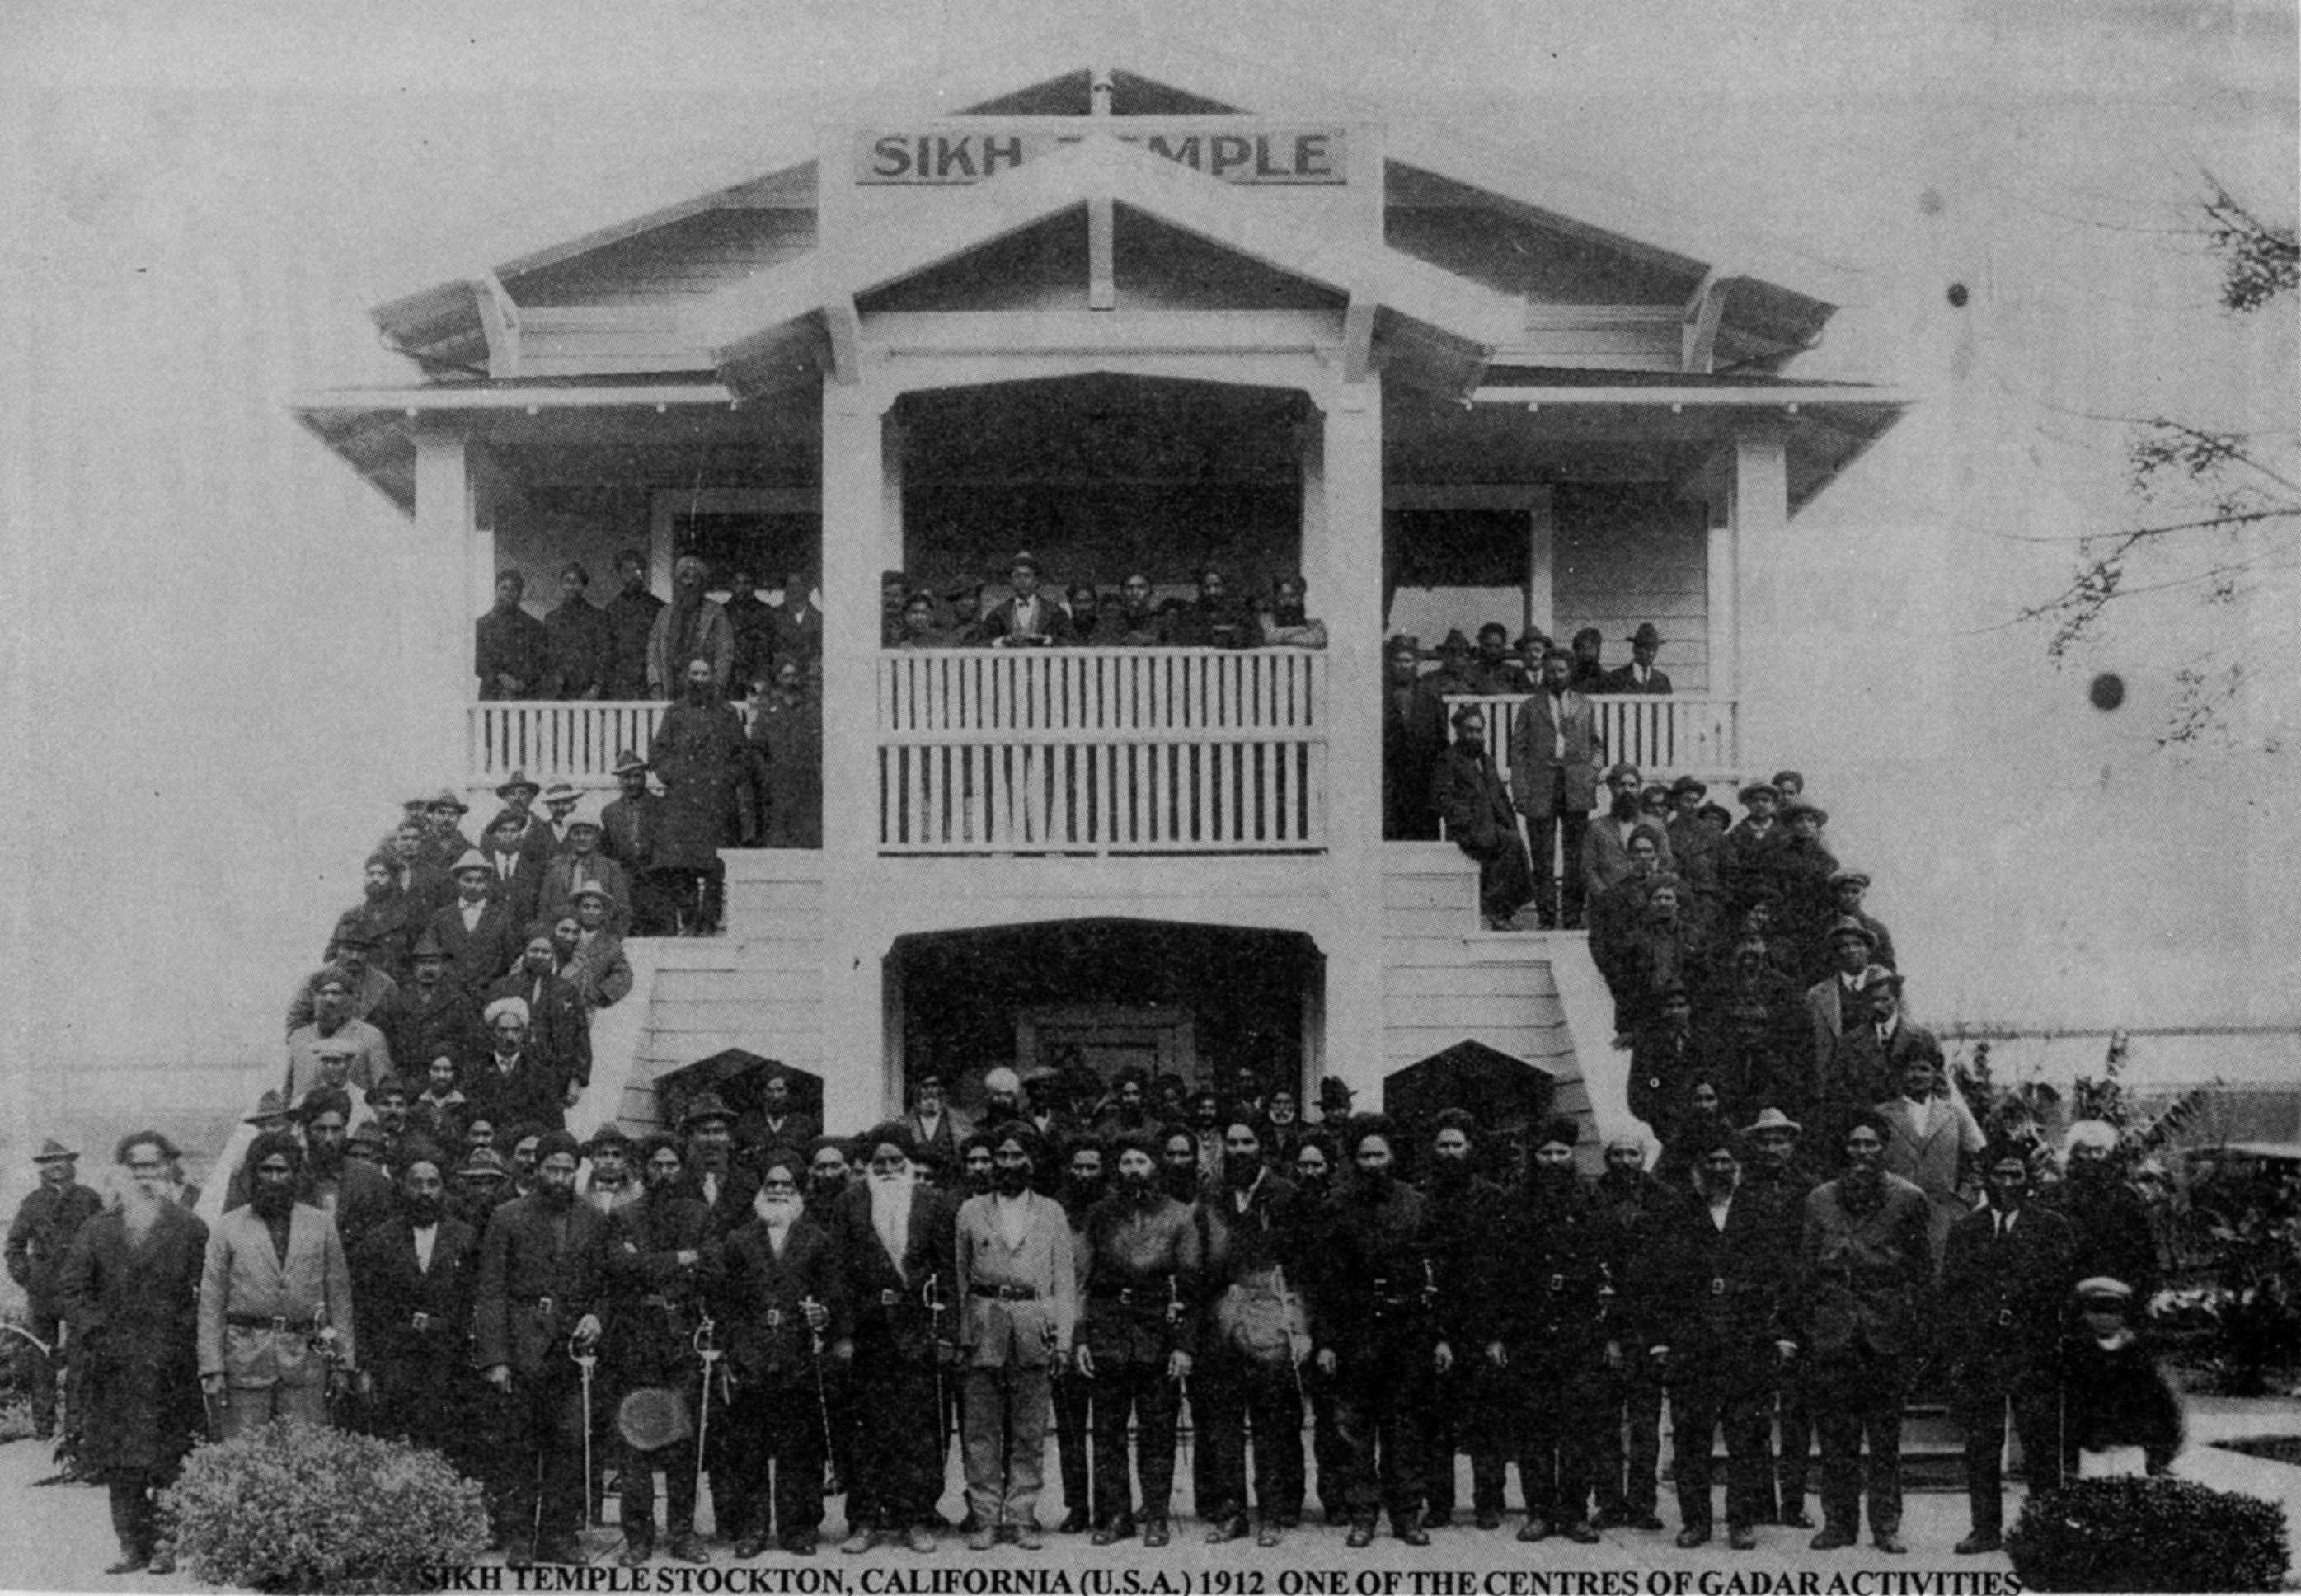 The Sikh Temple in Stockton, California, 1912 (photo: gadar.homestead.com)